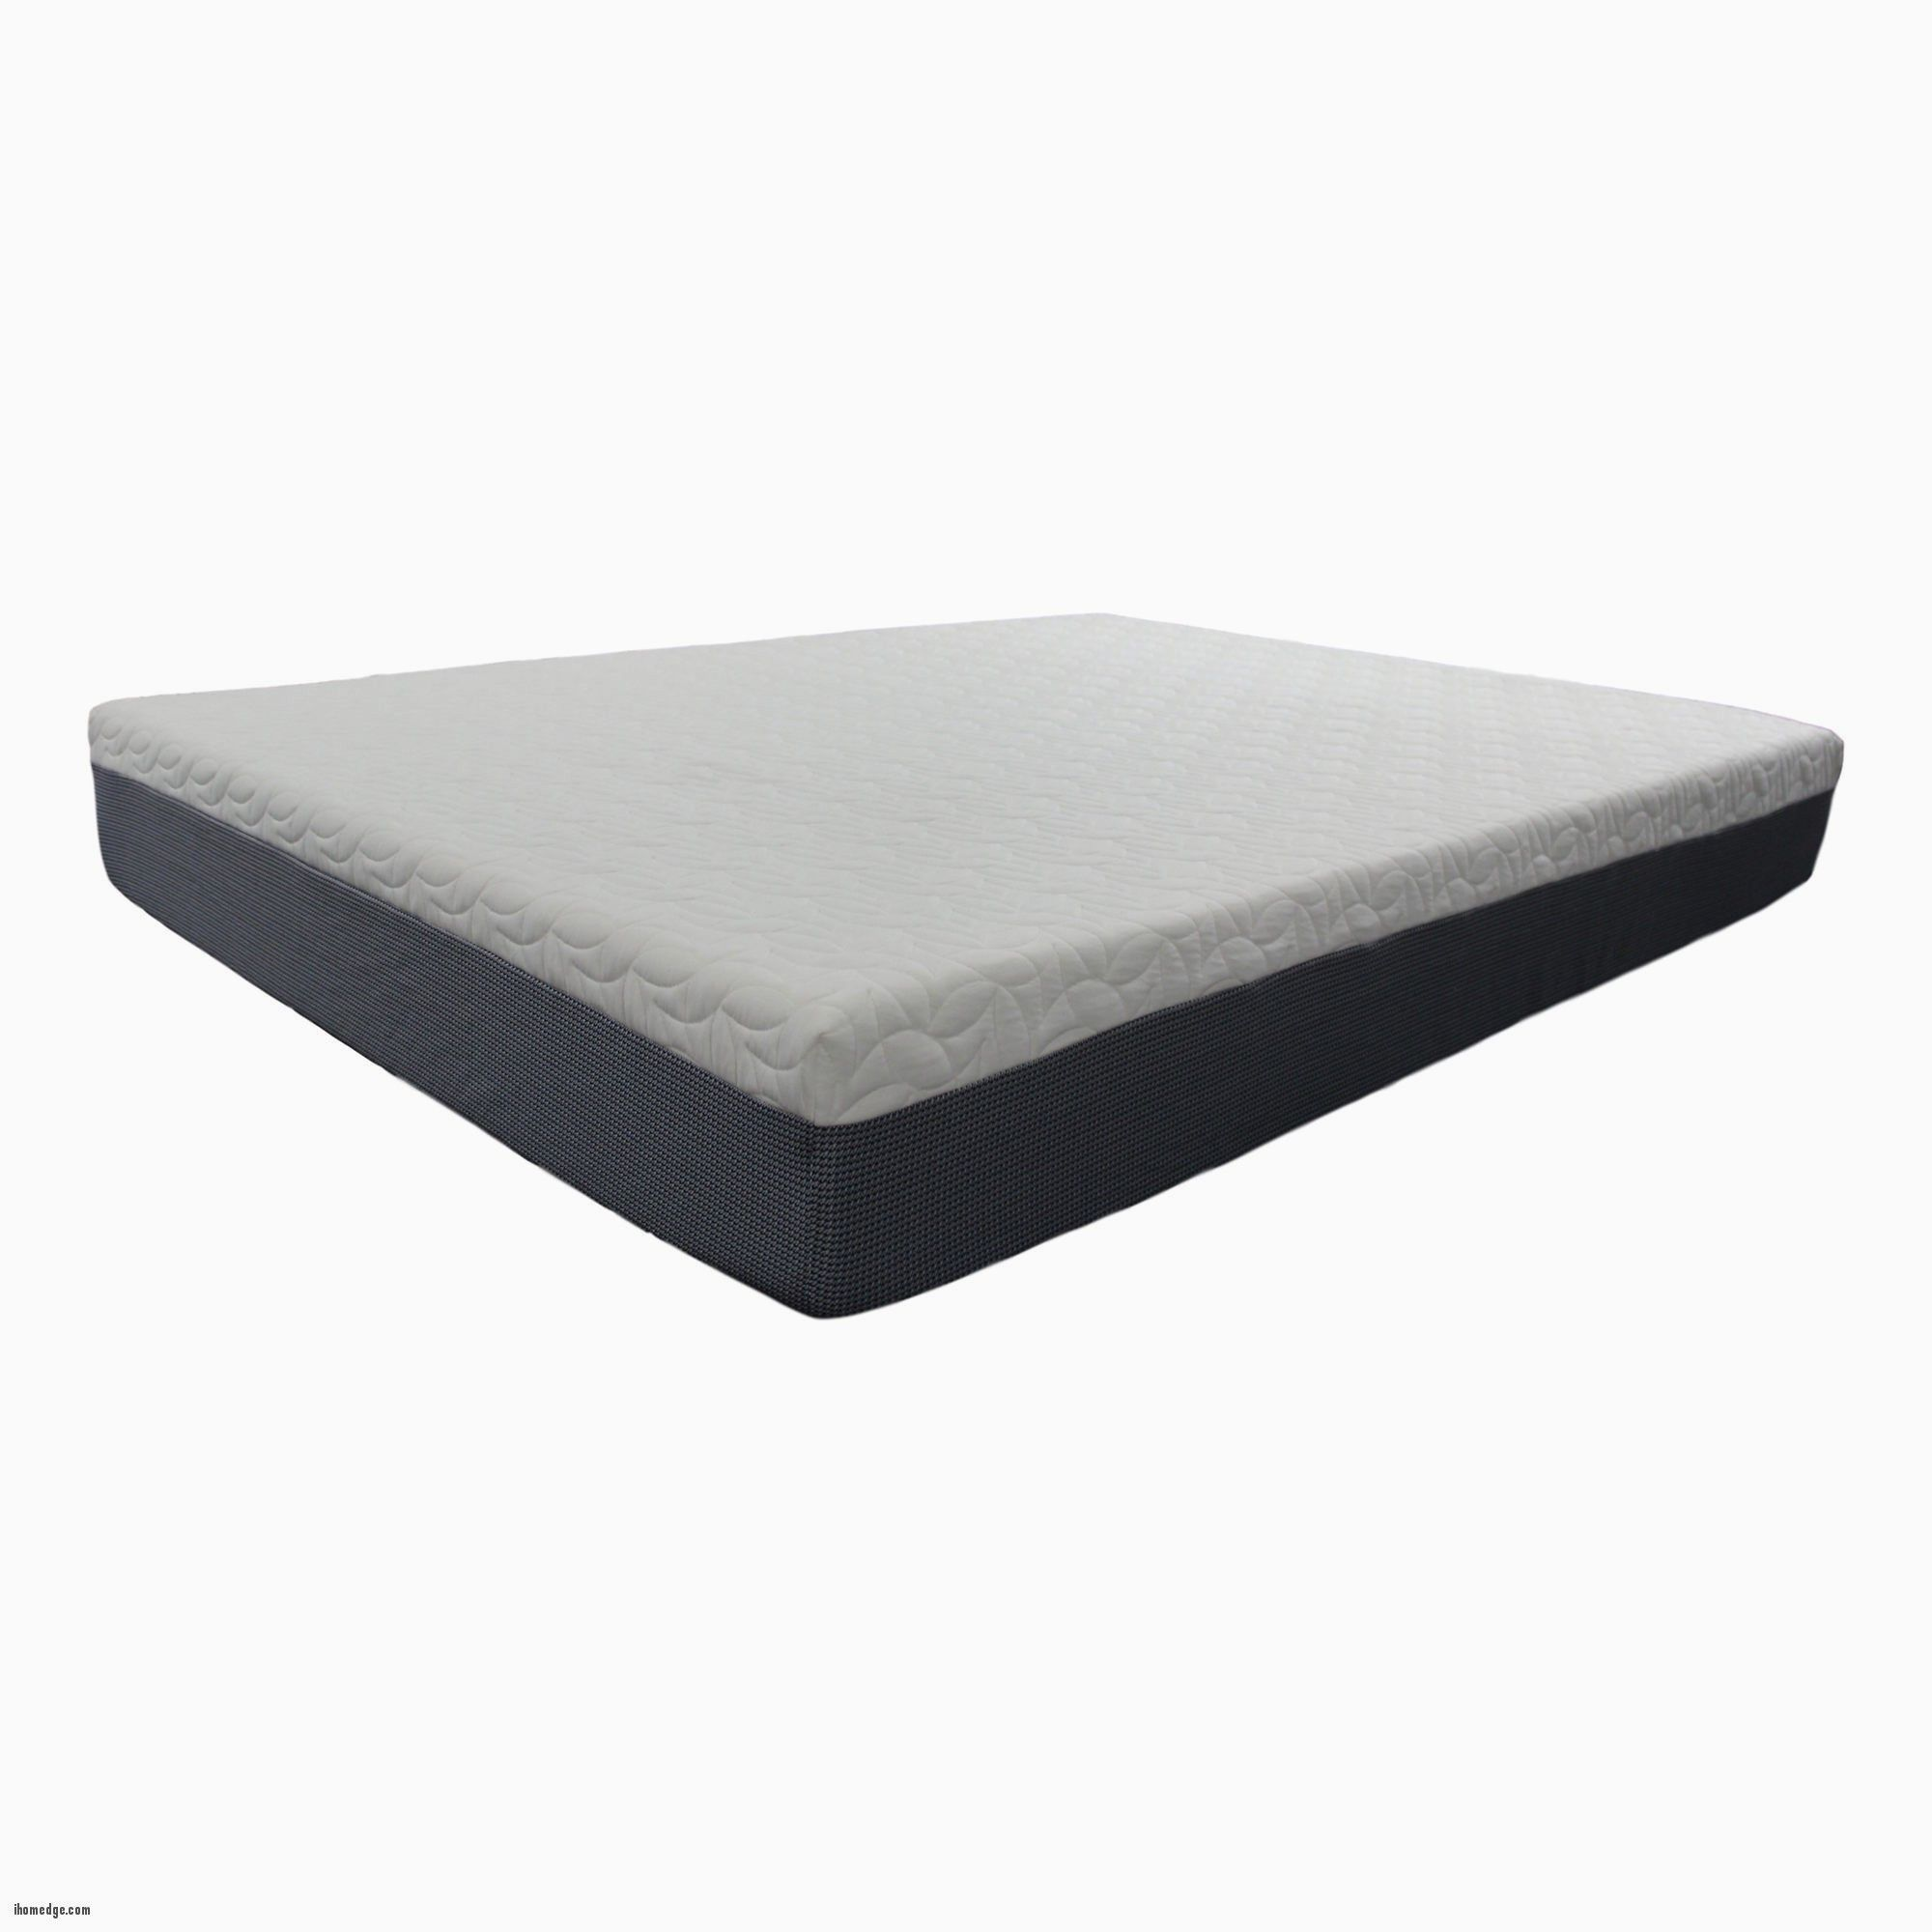 Unique Matelas 140x200 Conforama Mattress Box Springs Queen Mattress Size Mattress